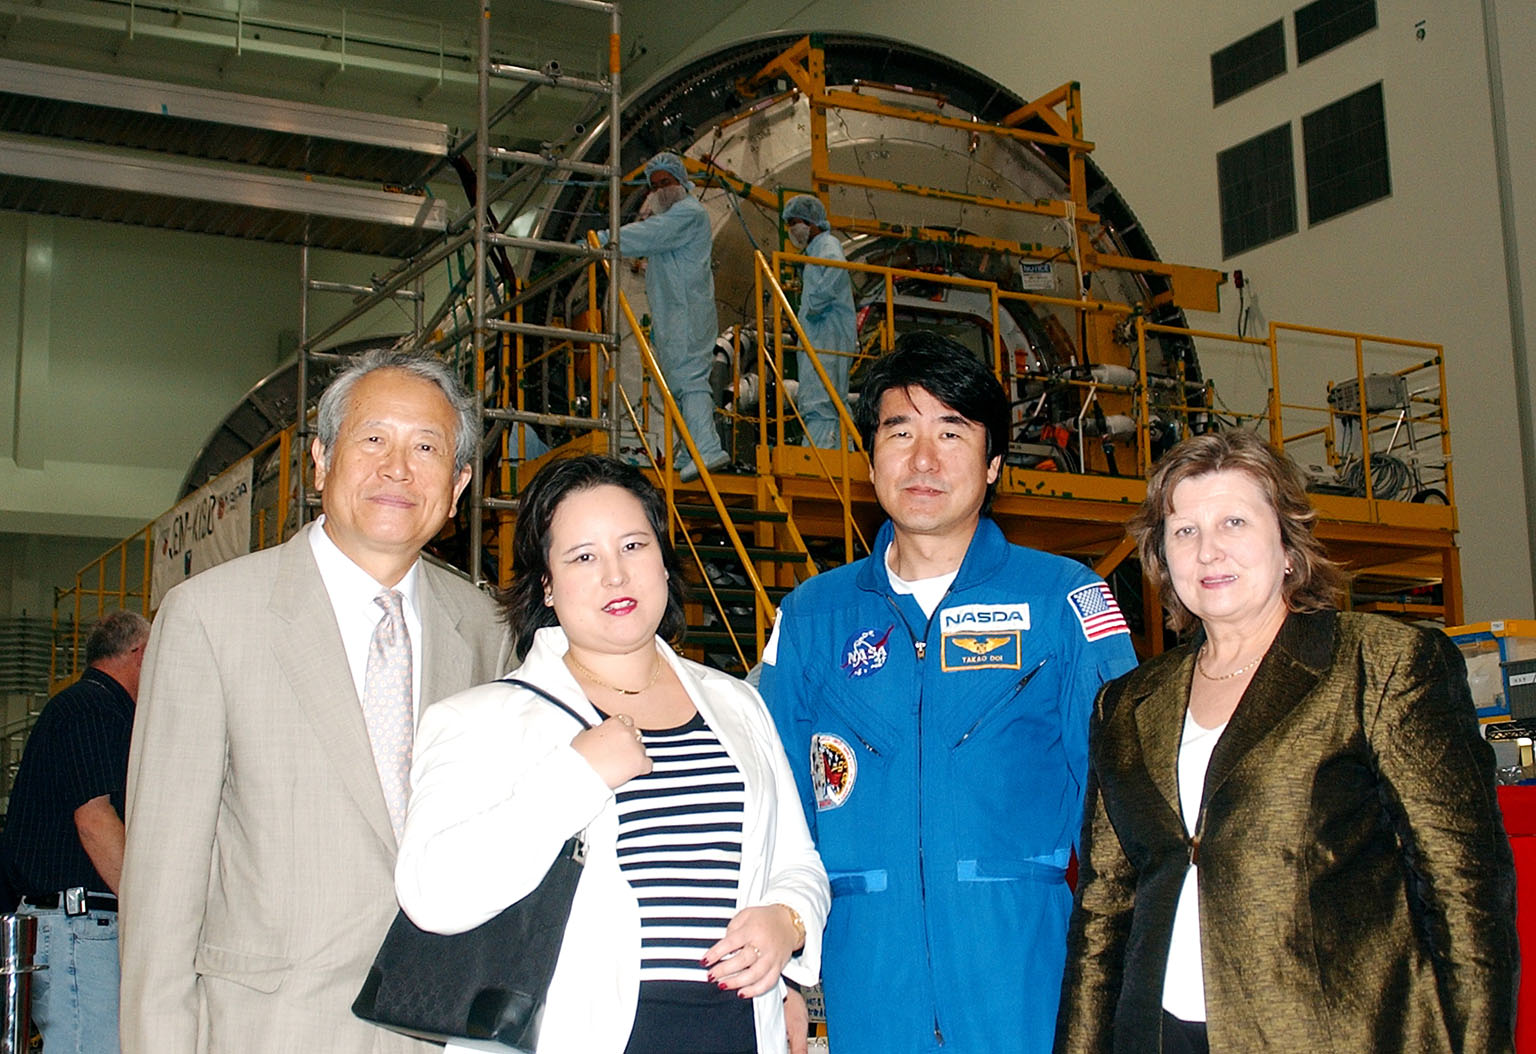 KENNEDY SPACE CENTER, FLA. - From left, the Consul General of Japan Ko Kodaira, his daughter Reiko, astronaut Dr. Takao Doi, and Kodaira's wife Marie pause for a photograph in the Space Station Processing Facility during their visit to Kennedy Space Center (KSC). Doi represented Japan on Space Shuttle mission STS-87, the fourth U.S Microgravity Payload flight. Kodaira is touring the facilities at KSC at the invitation of the local office of the National Space Development Agency of Japan (NASDA) to acquaint him with KSC's unique processing capabilities.